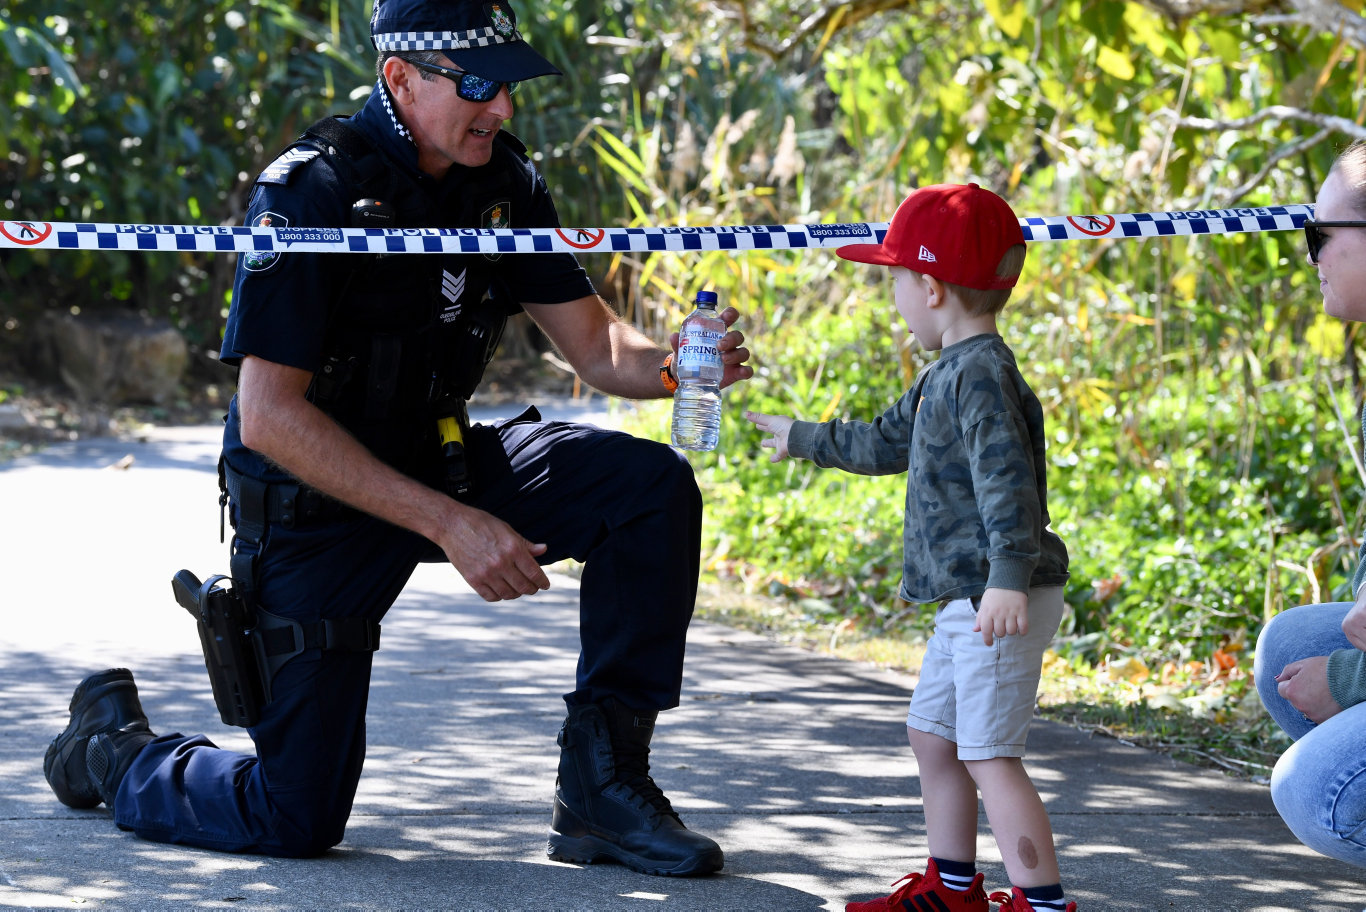 J.J Kelly,3, from Caloundra hands out a bottle of water to Sgt. Phillip Stevens on duty at the Peregian fires. Photo: Warren Lynam